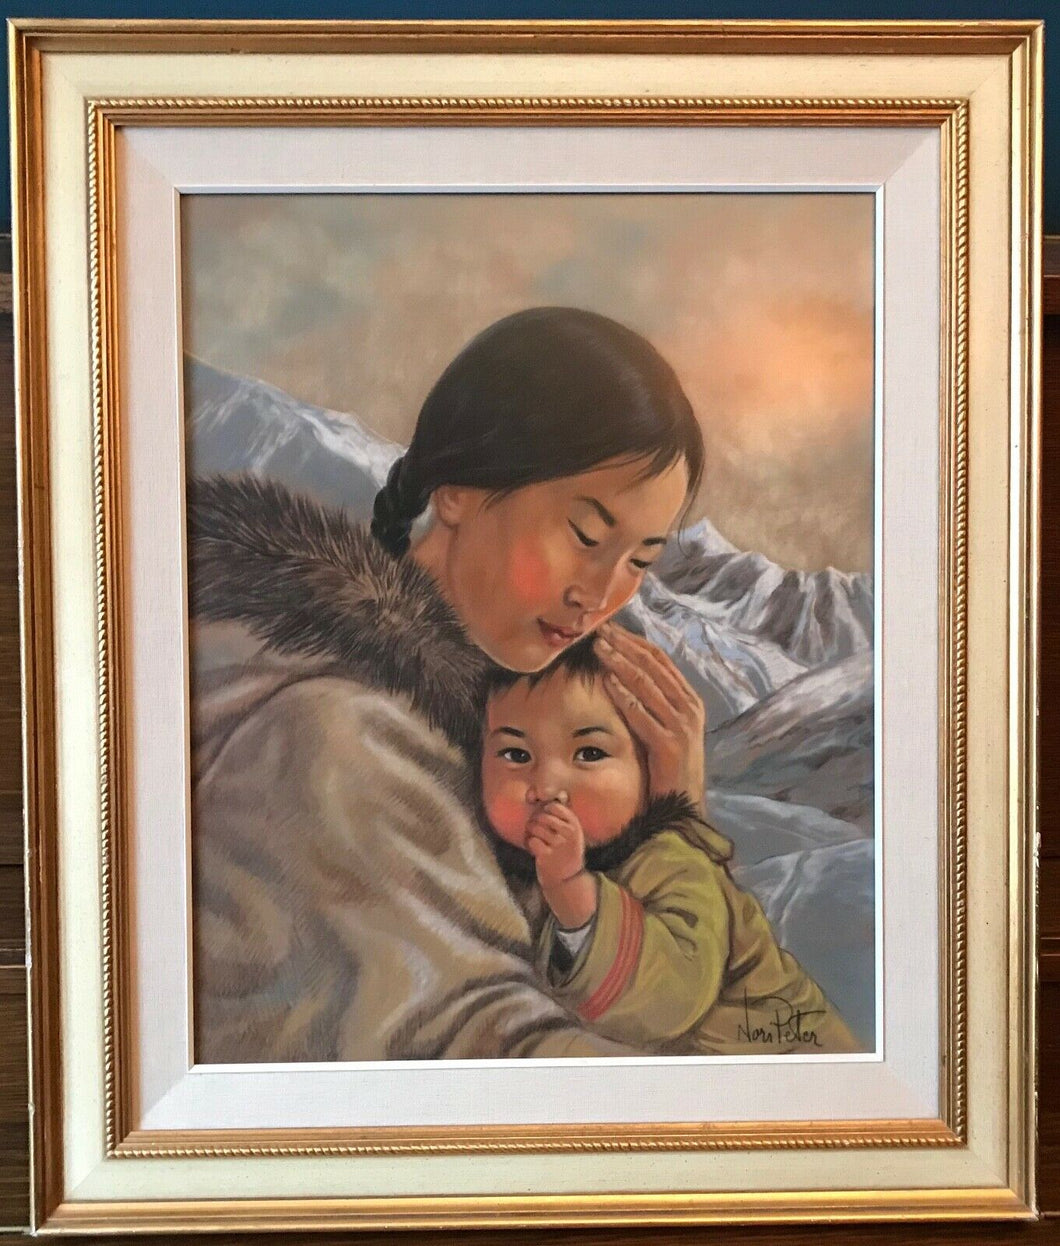 MOTHER AND CHILD - NORI PETER